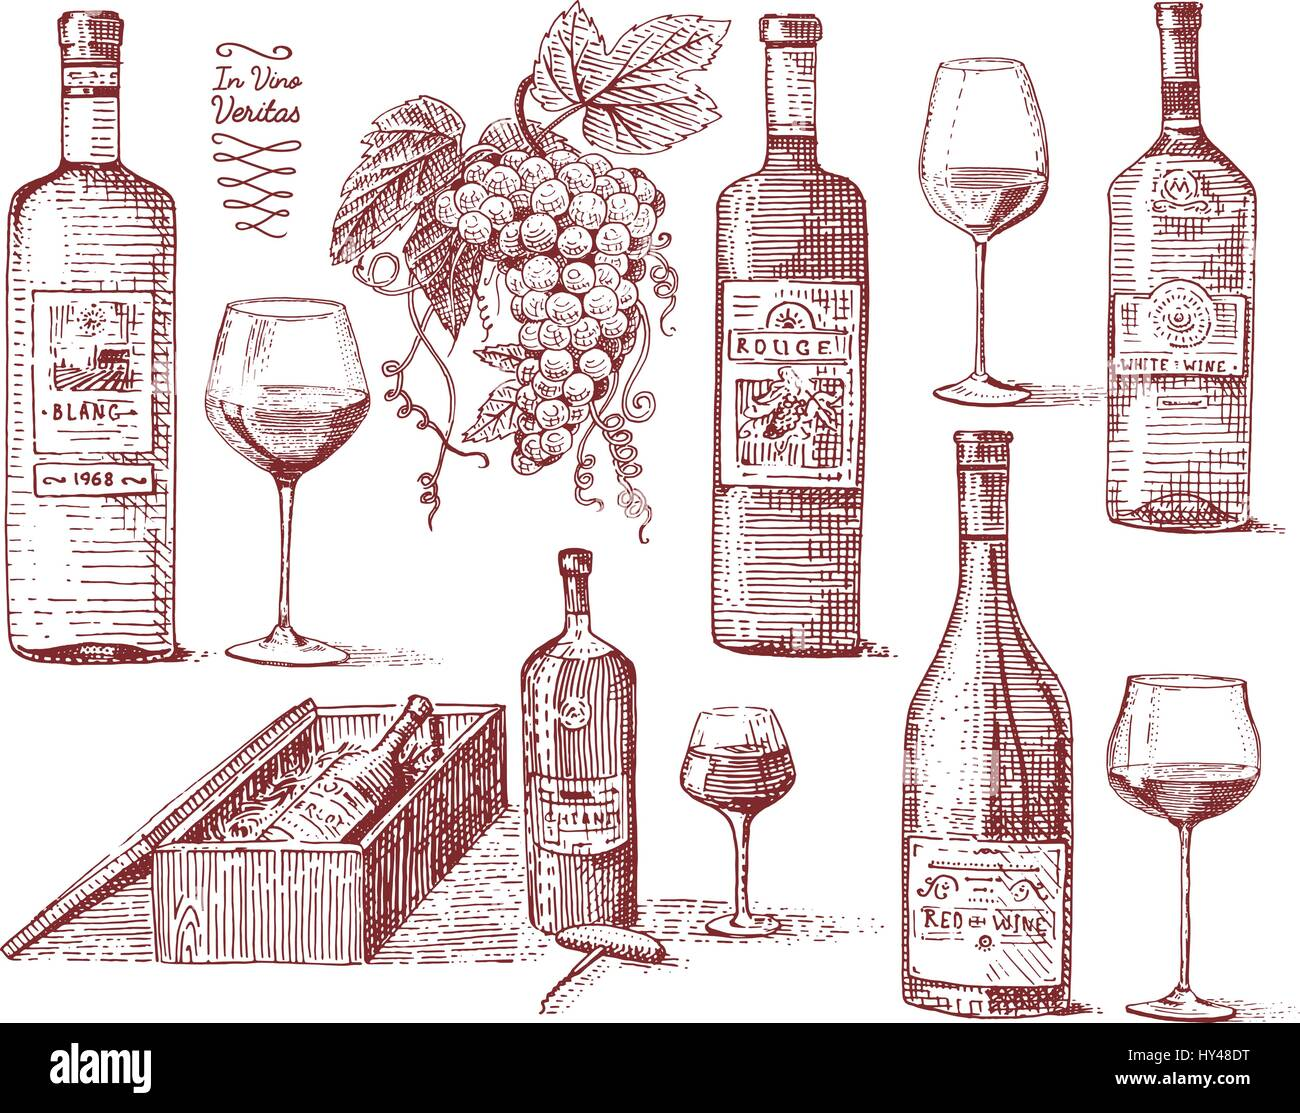 Wine Harvest Products Press Grapes Vineyards Corkscrews Glasses Bottles In Vintage Style Engraved Hand Drawn Sketch